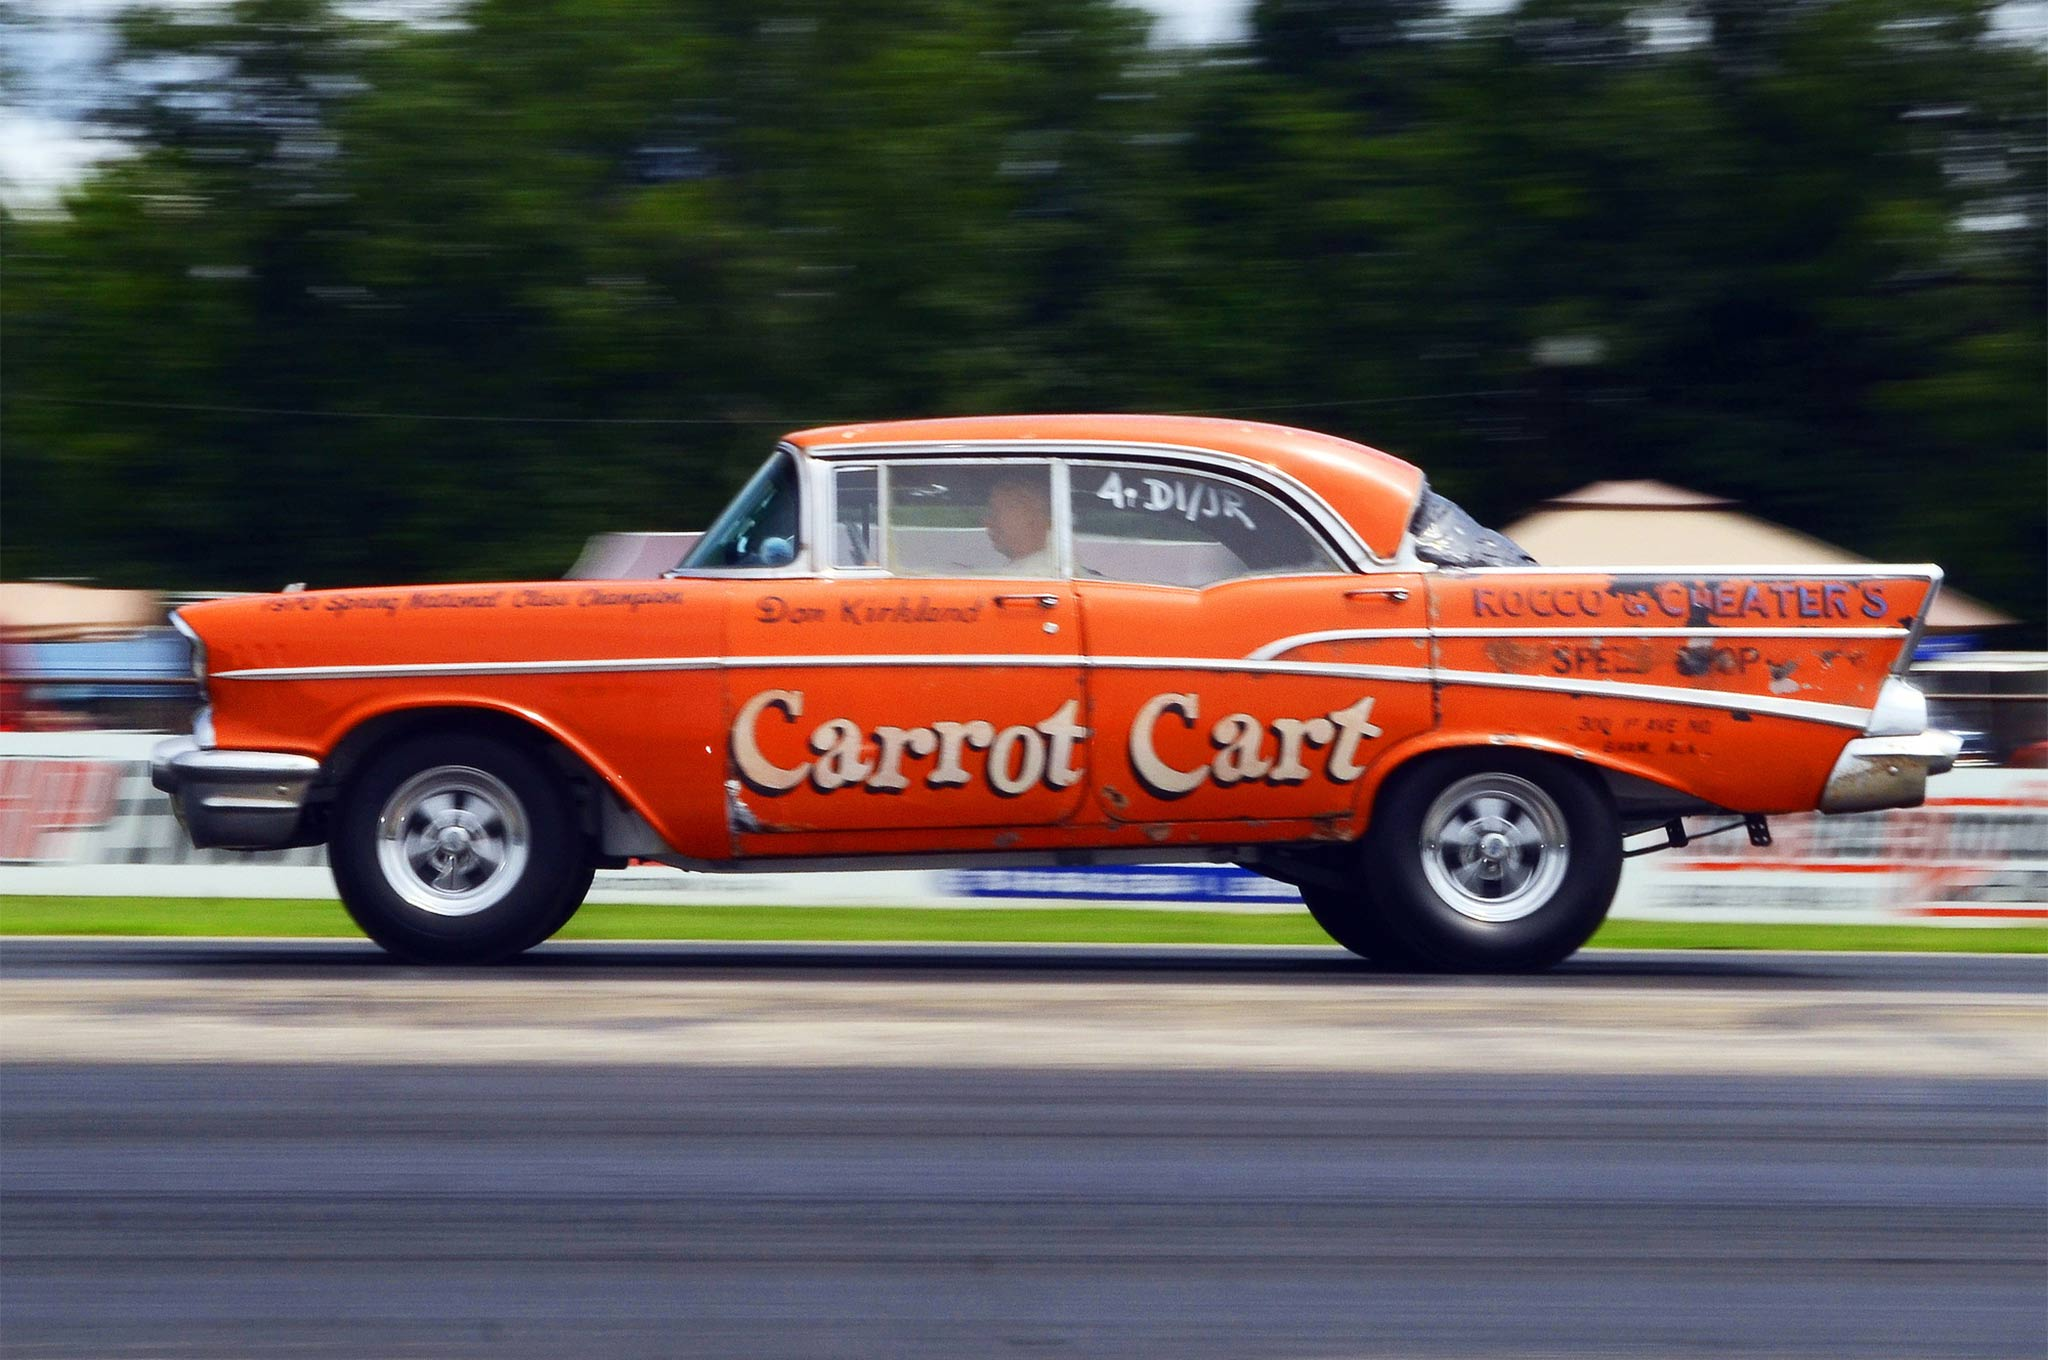 "Don Kirkland bought the Carrot Cart back in 1968 for $40; he ran it with a 220hp 283 in N/S and later, with a ""good engine"" he got from Pennsylvanian Lee Crupi, he ran O/S and won class at the 1970 Springnationals in Dallas. After the 15-year-rule occurred, the car literally went out to pasture and Don raced others. More than 40 years on, he dug it out. When he and wife Debbie arrived from Alabama, there was a bag covering the back window and the paint showed its age, but he told us his highlight for the weekend was getting a rear axle in place that let him drive it under power for the first time in decades and the graciousness of Beaver Bob to let him make a lap on Sunday, the car's first in 44 years."